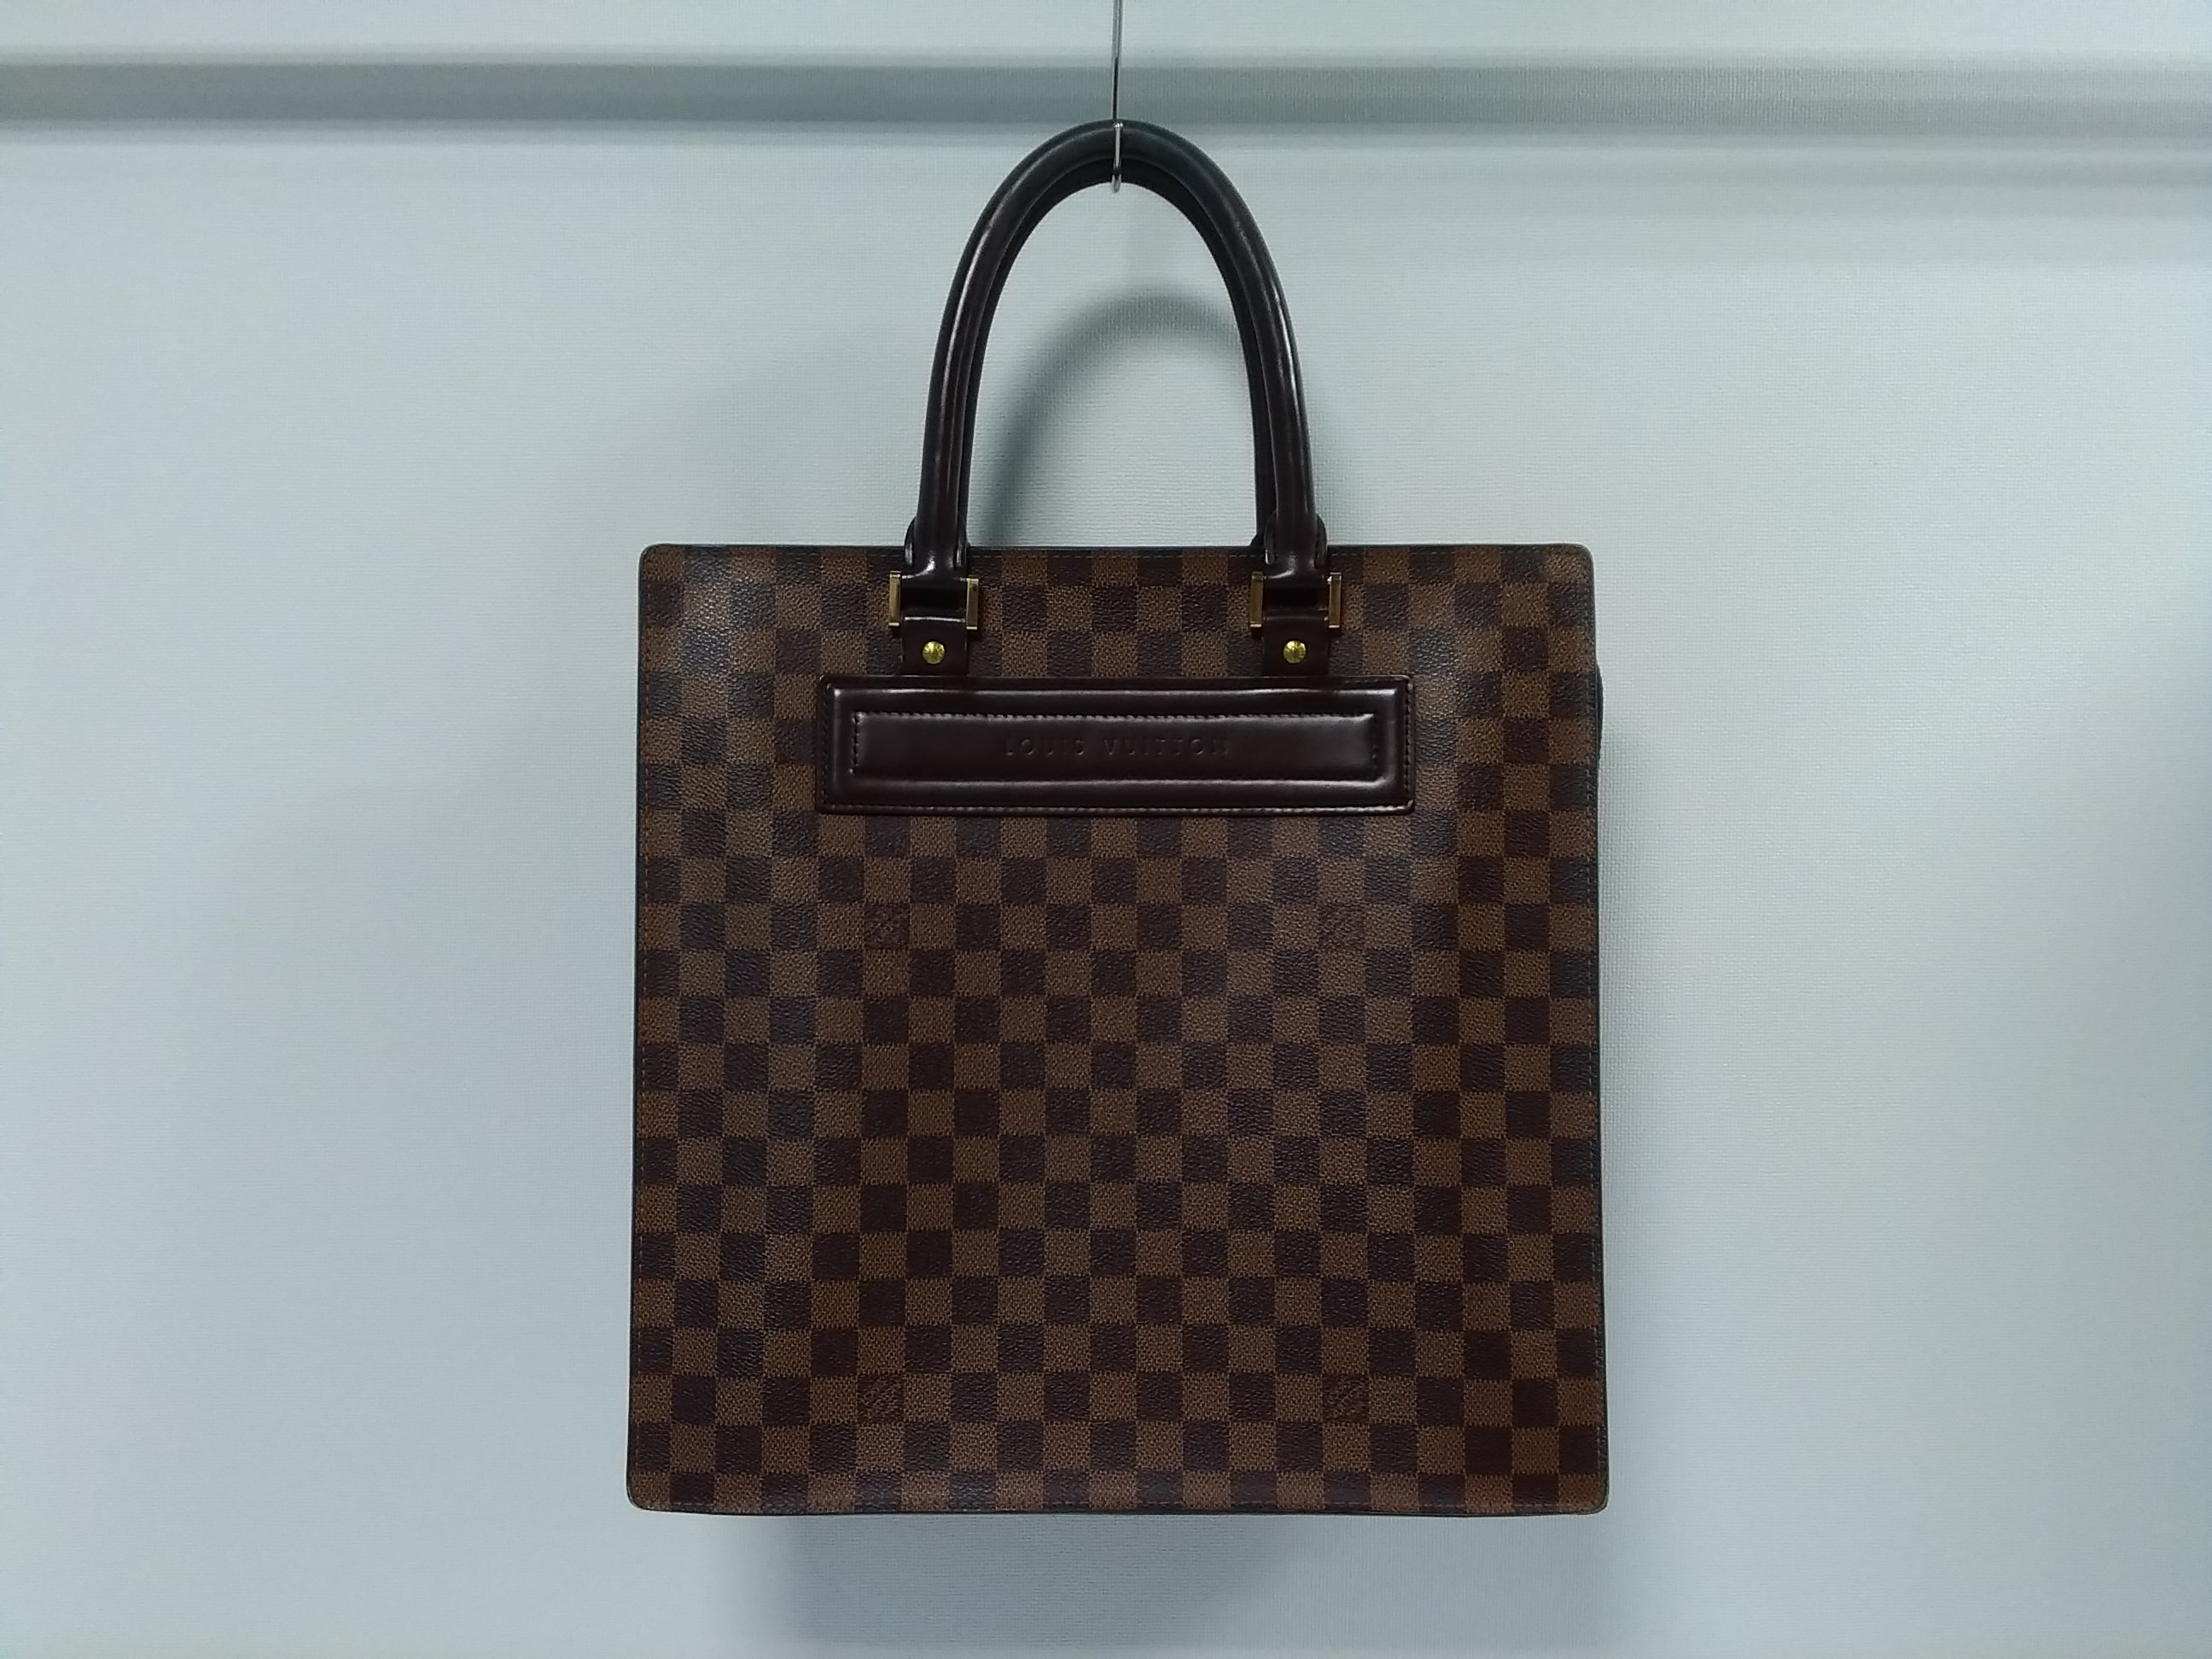 ヴェニスGM|LOUIS VUITTON